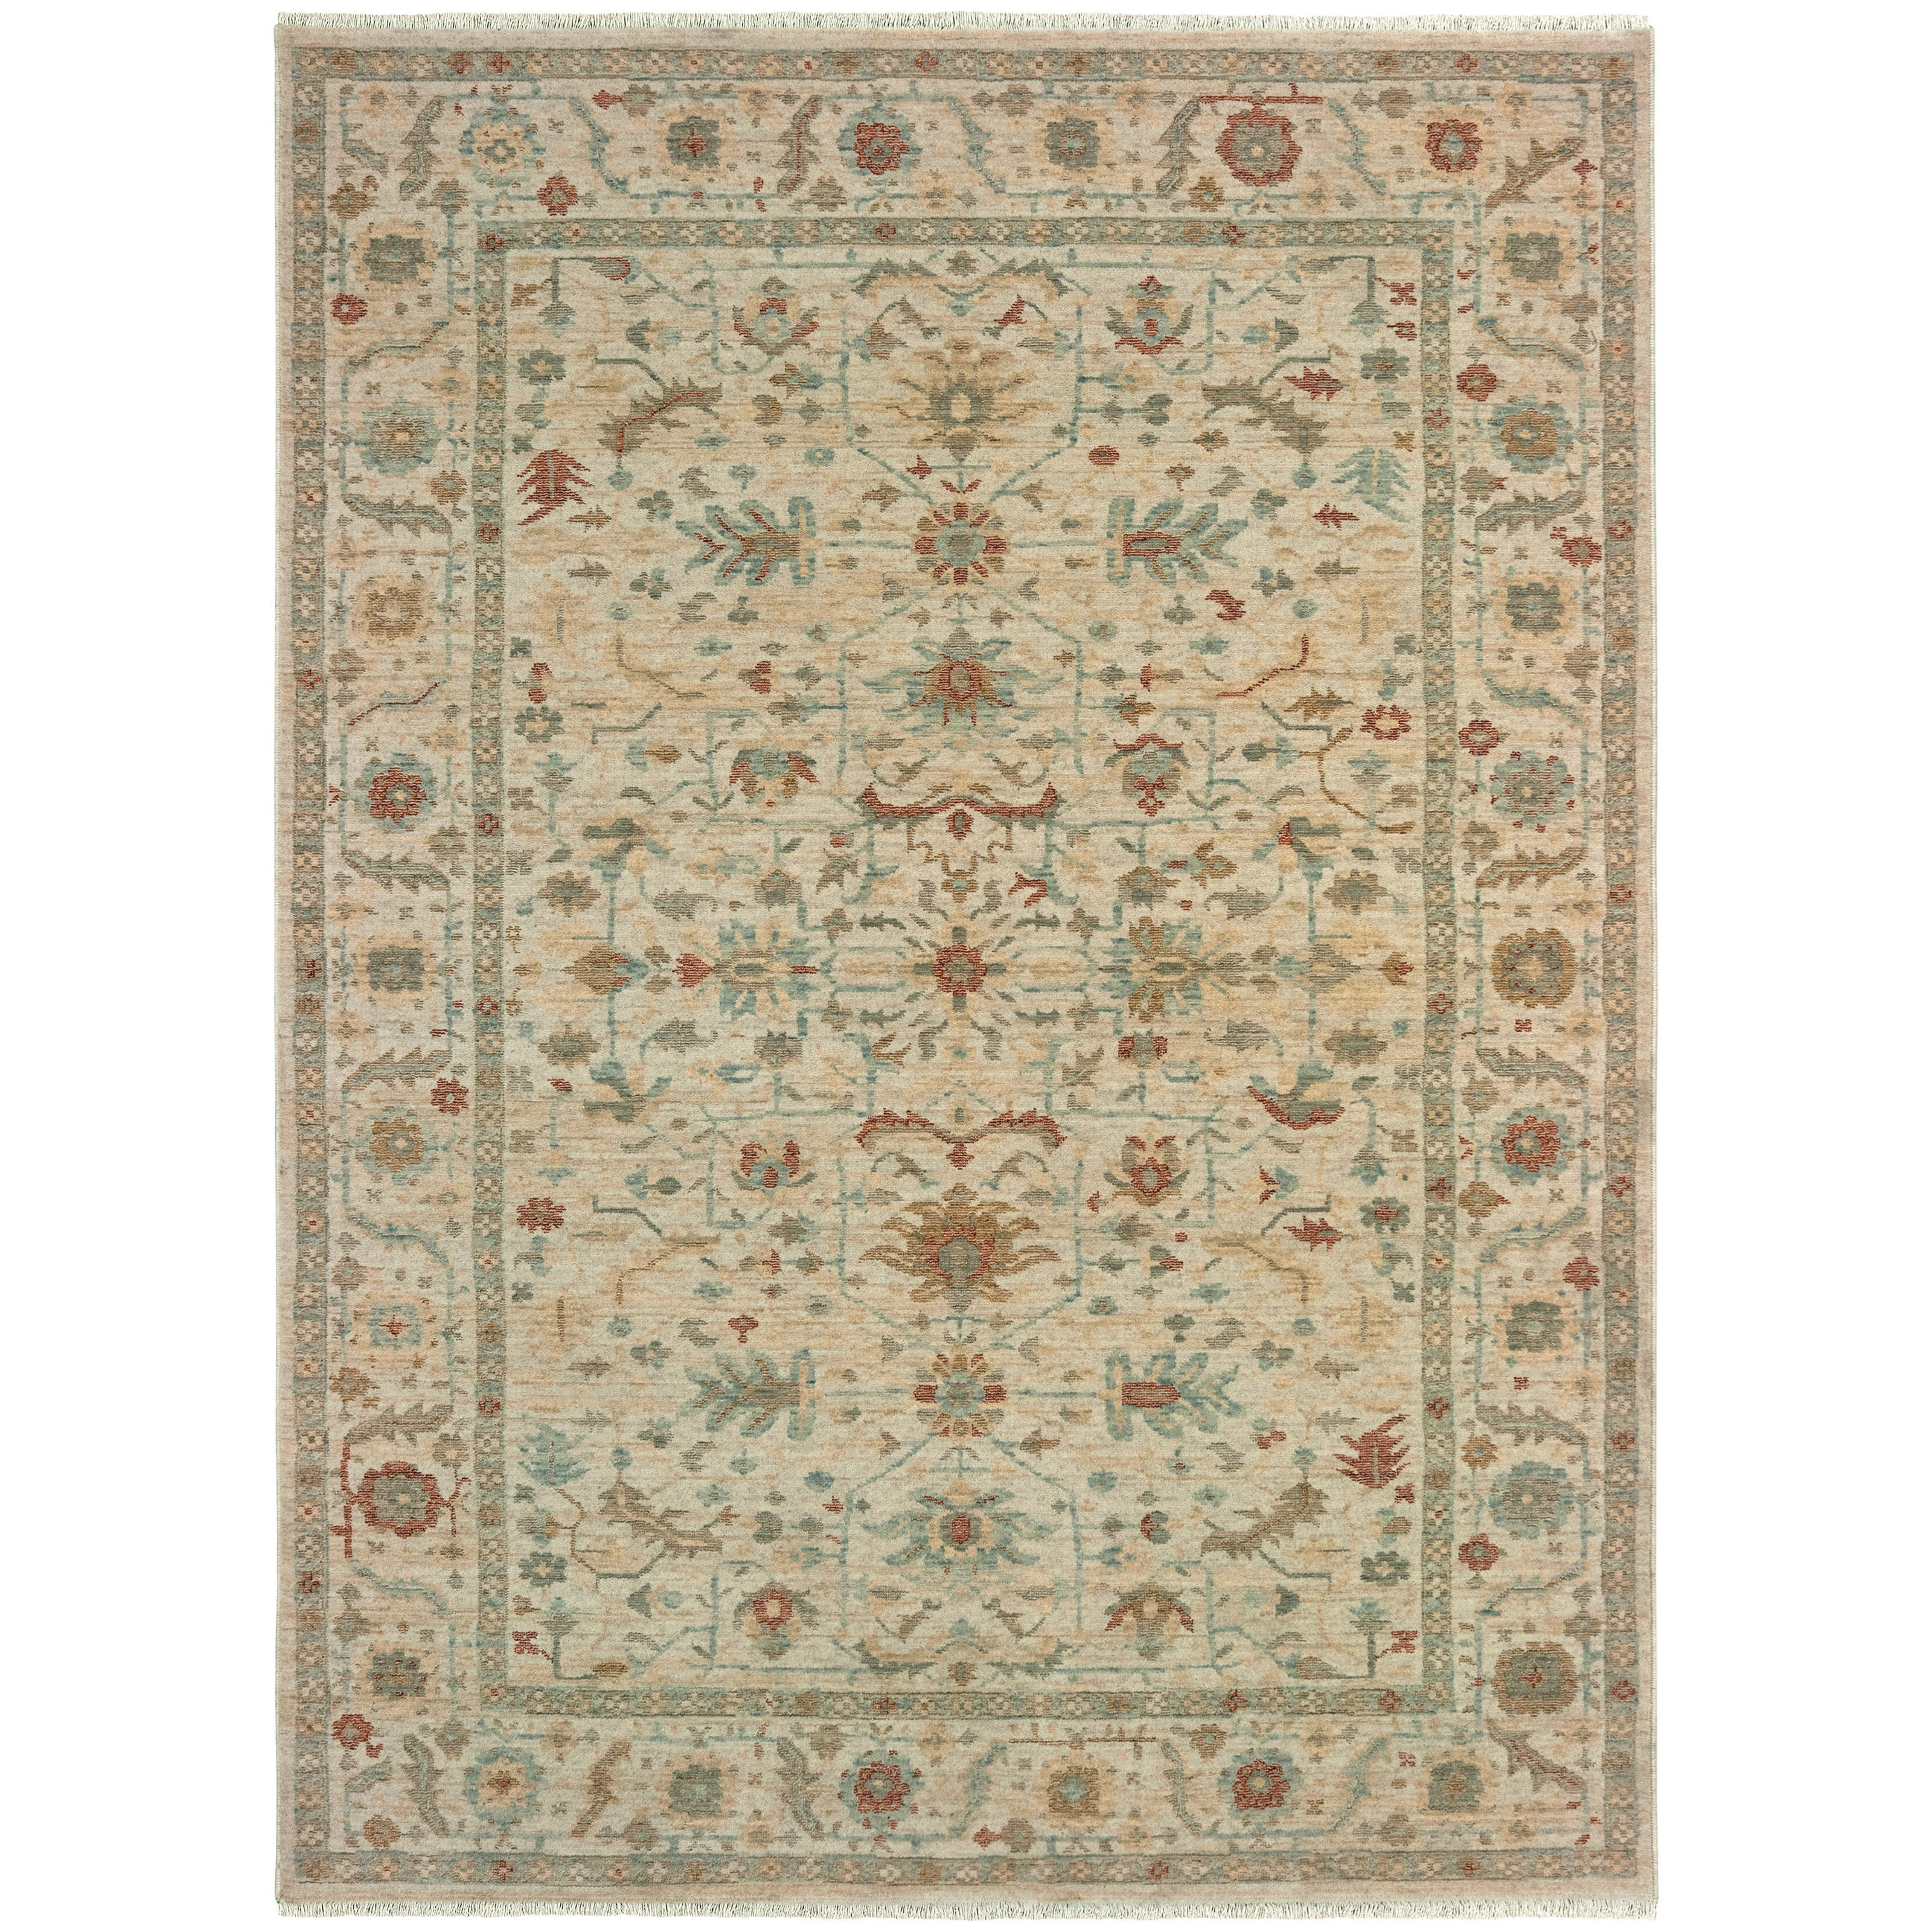 "3'10"" X  5' 5"" Rectangle Rug"